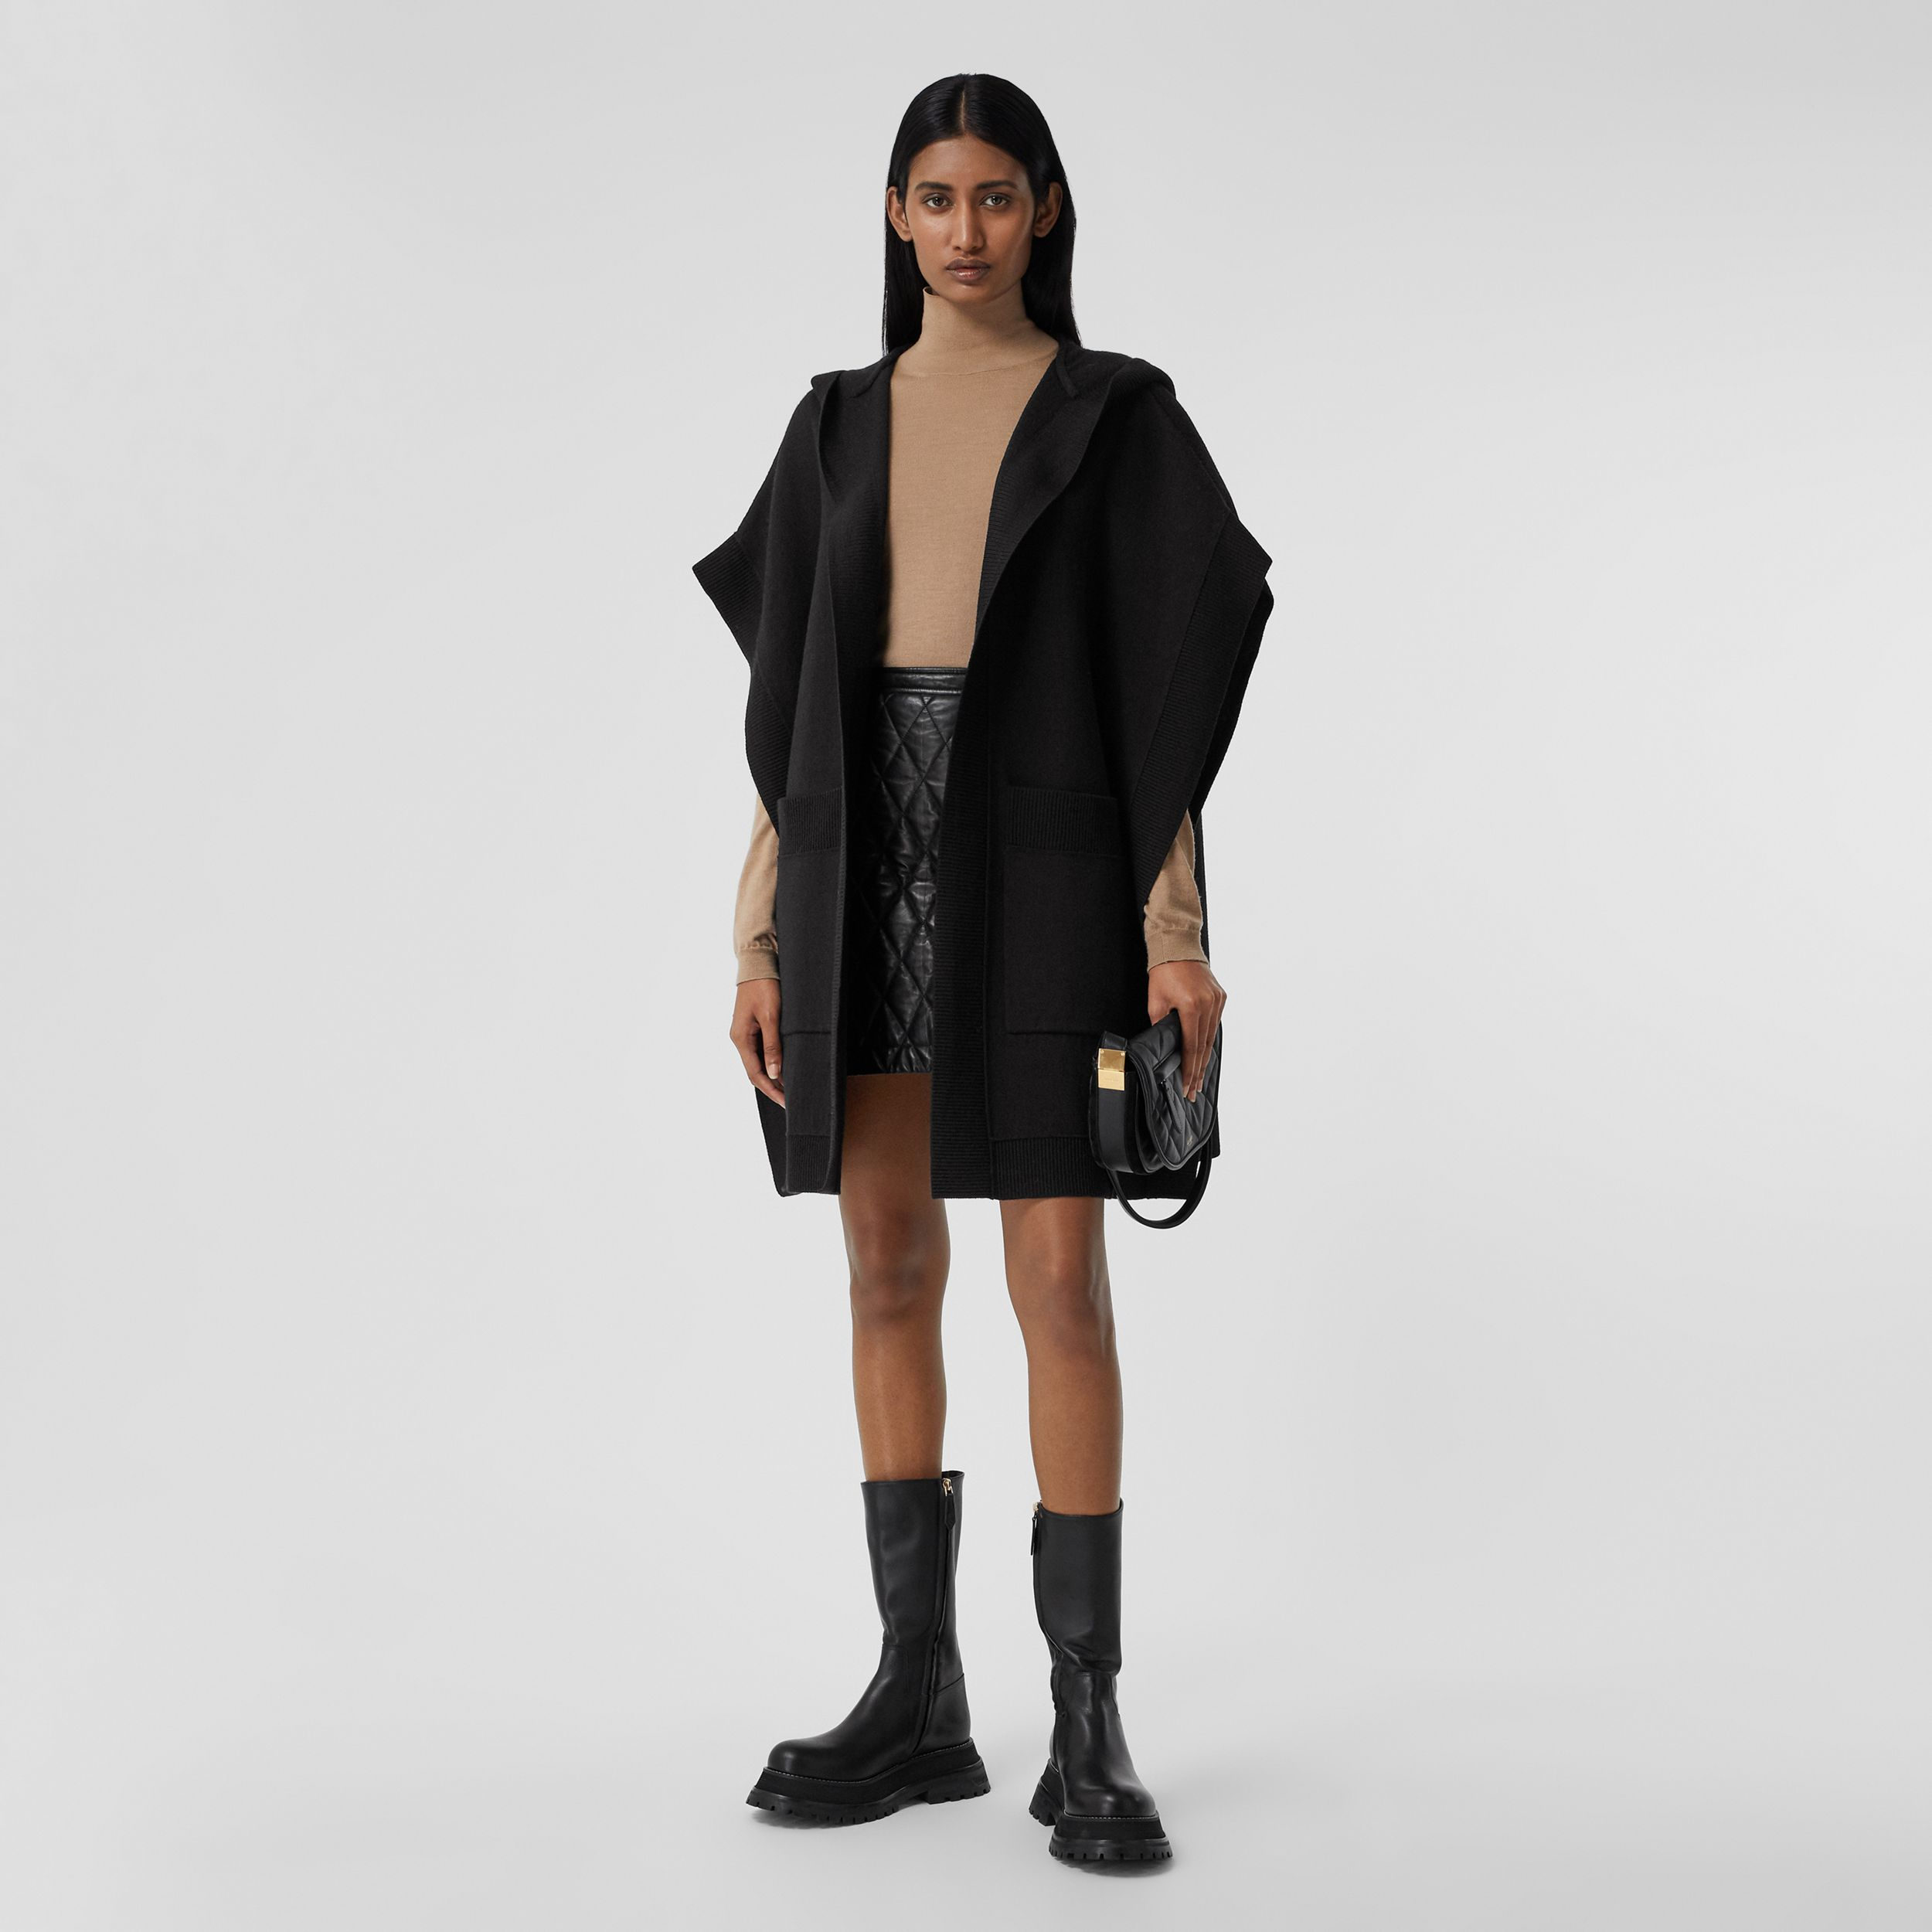 Love Wool Blend Jacquard Hooded Cape in Black - Women | Burberry - 3